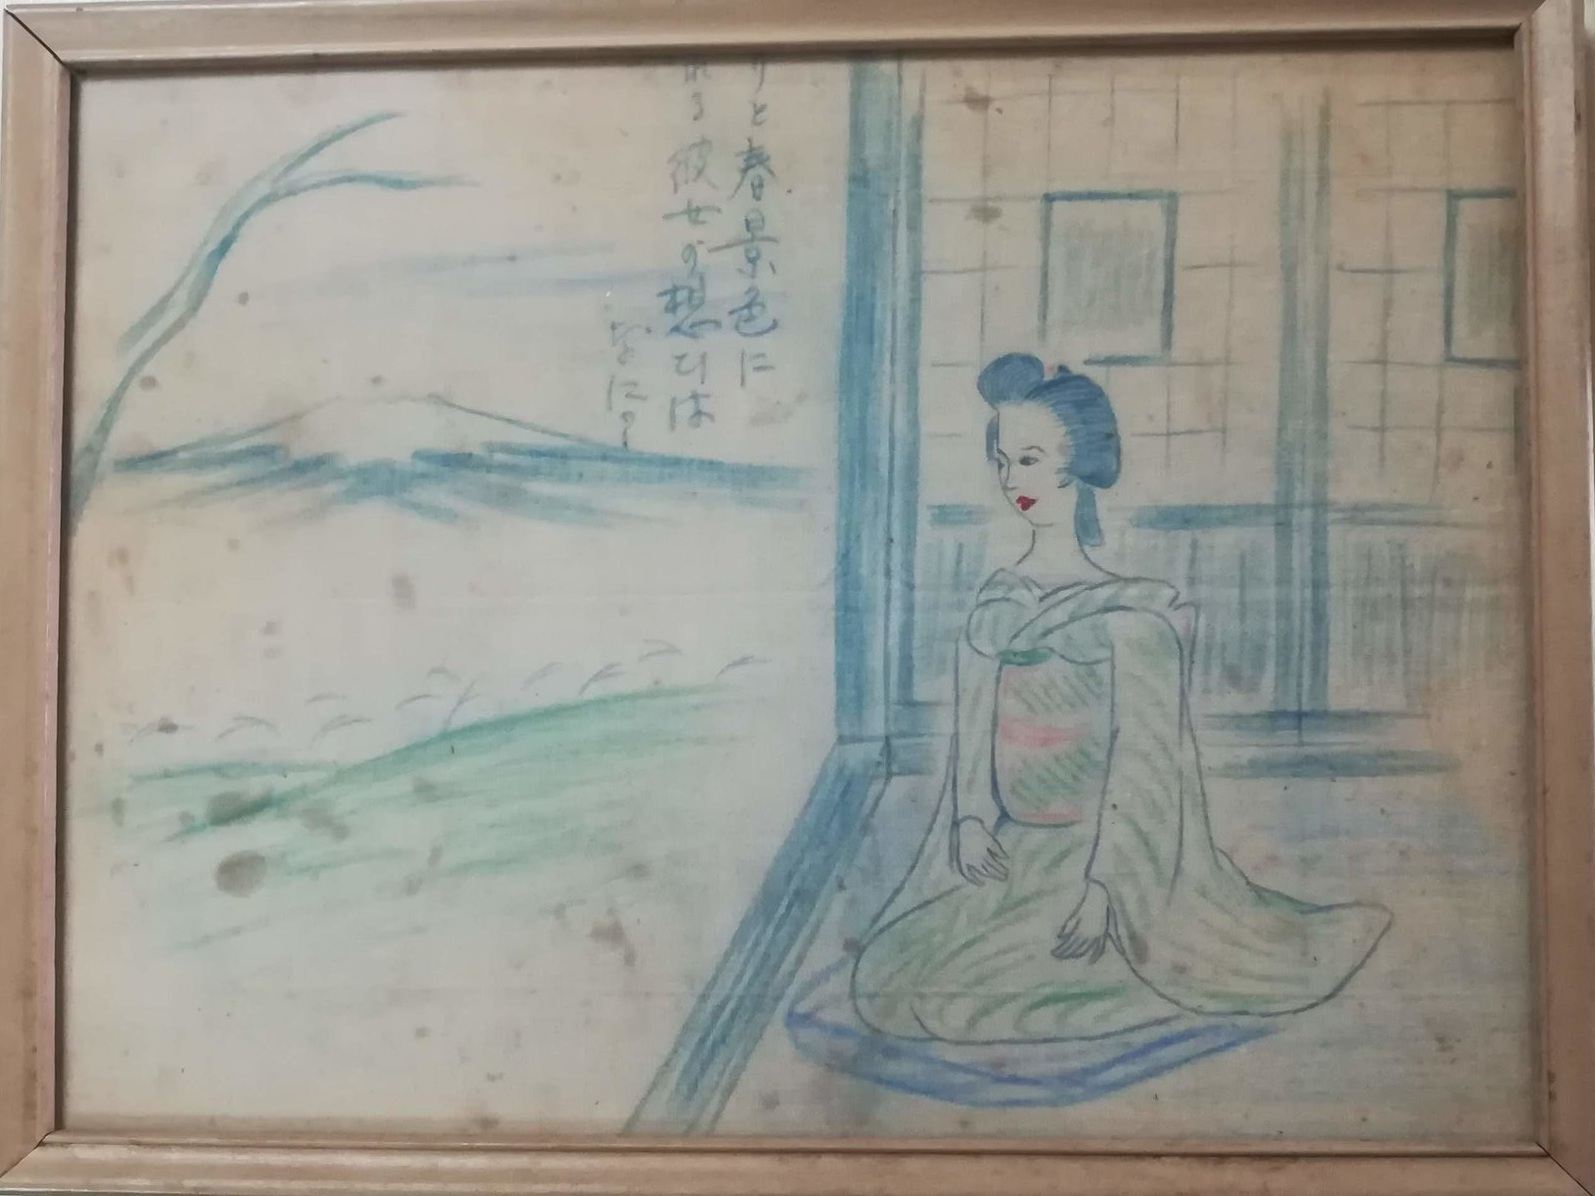 Picture Drawn by Japanese Prisoner, WW2